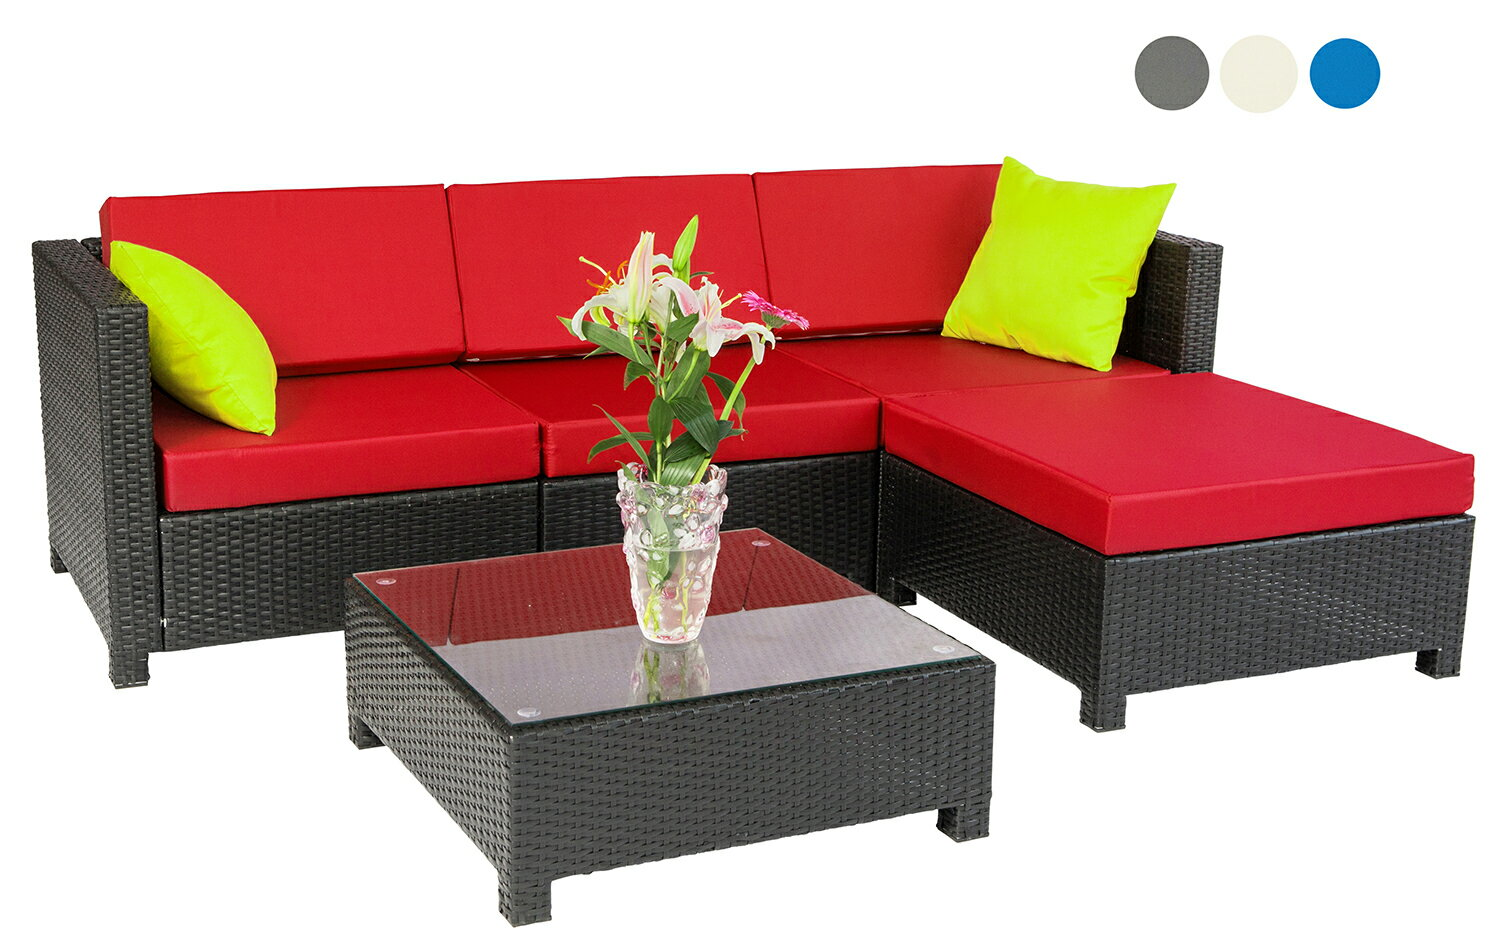 Mcombo 5pc luxury wicker sectional outdoor sofa aluminum frame furniture 2 sets covers 0